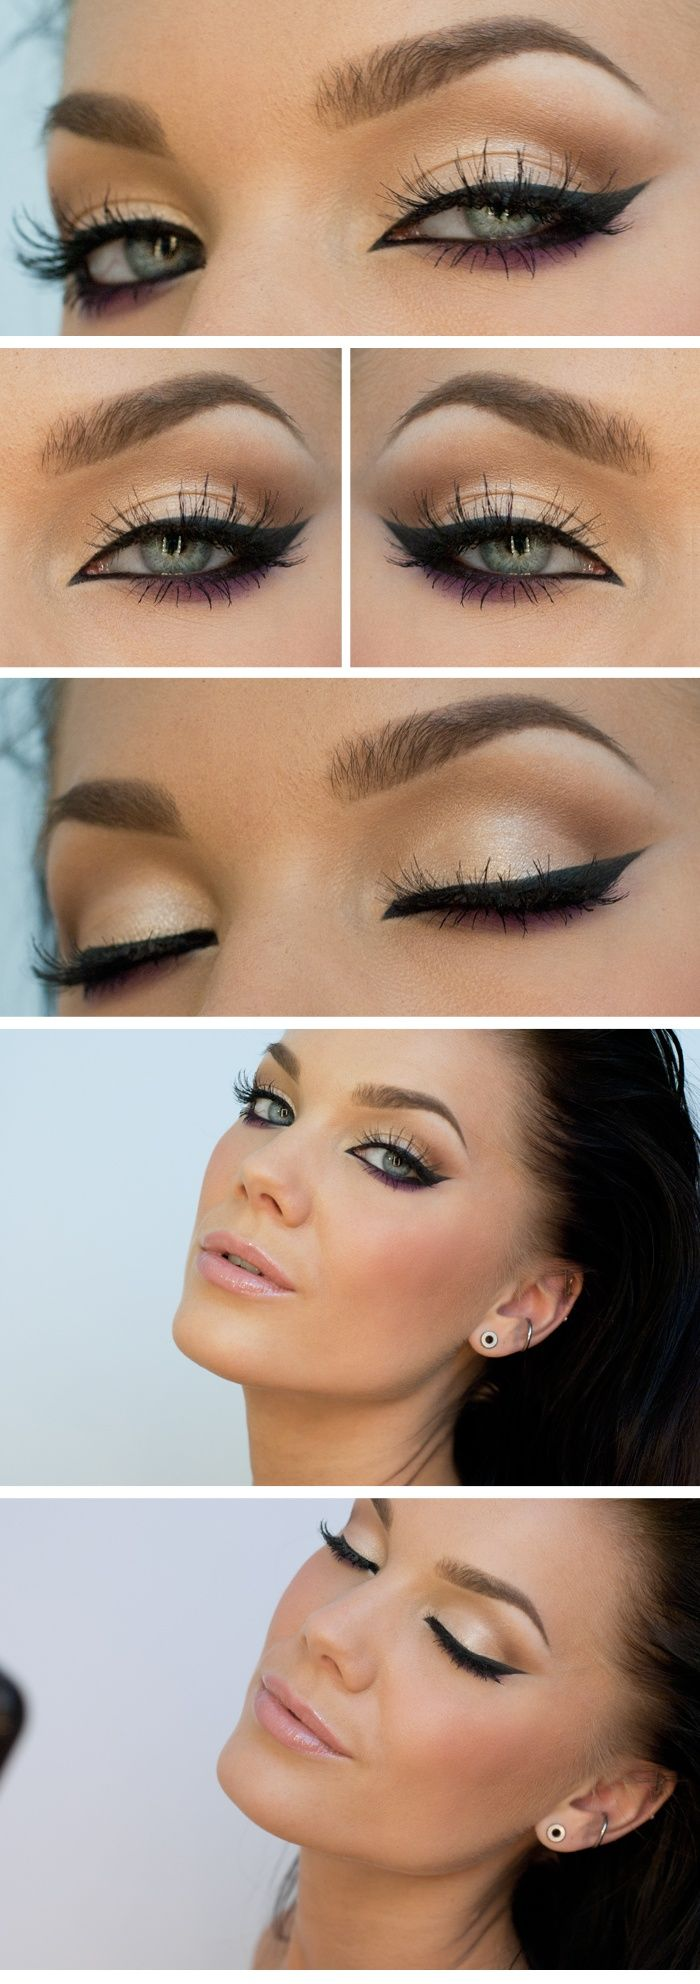 This makeup is so perfect I can't even. PERFECT.